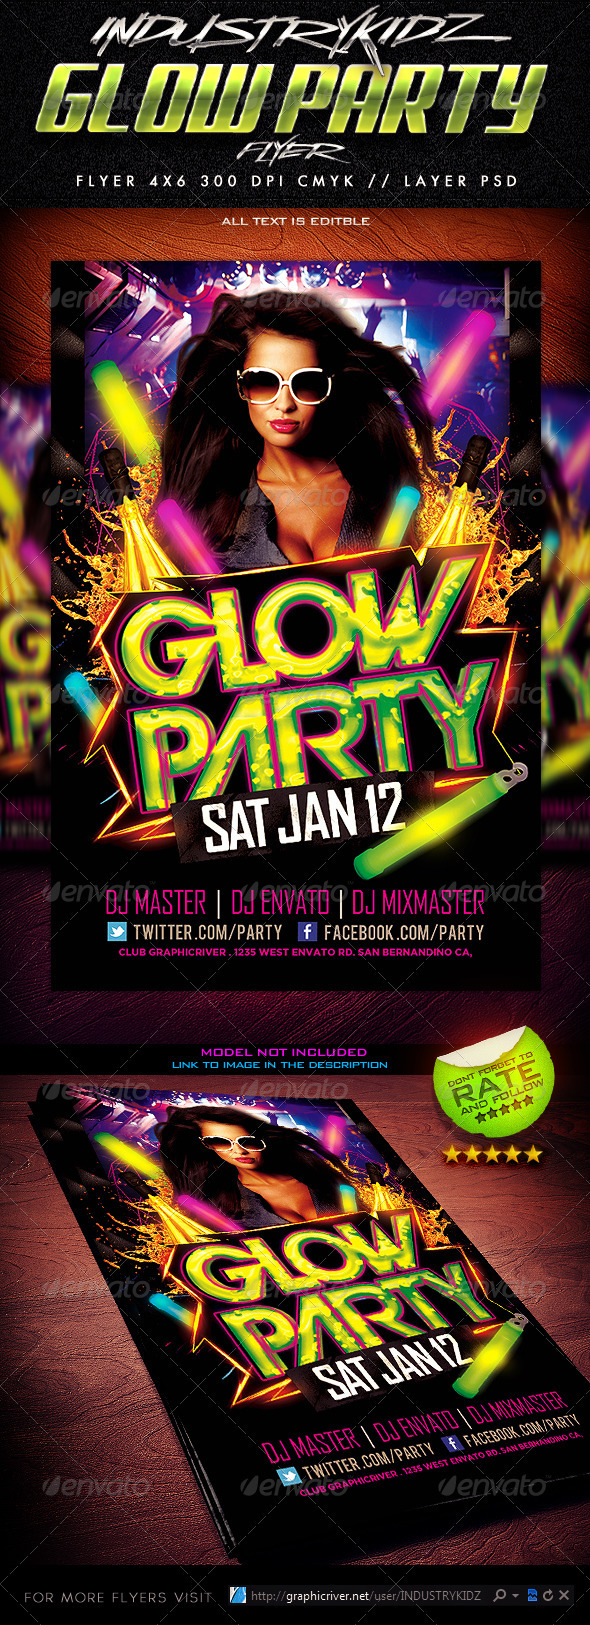 glow party flyer template com your template glow party flyer template